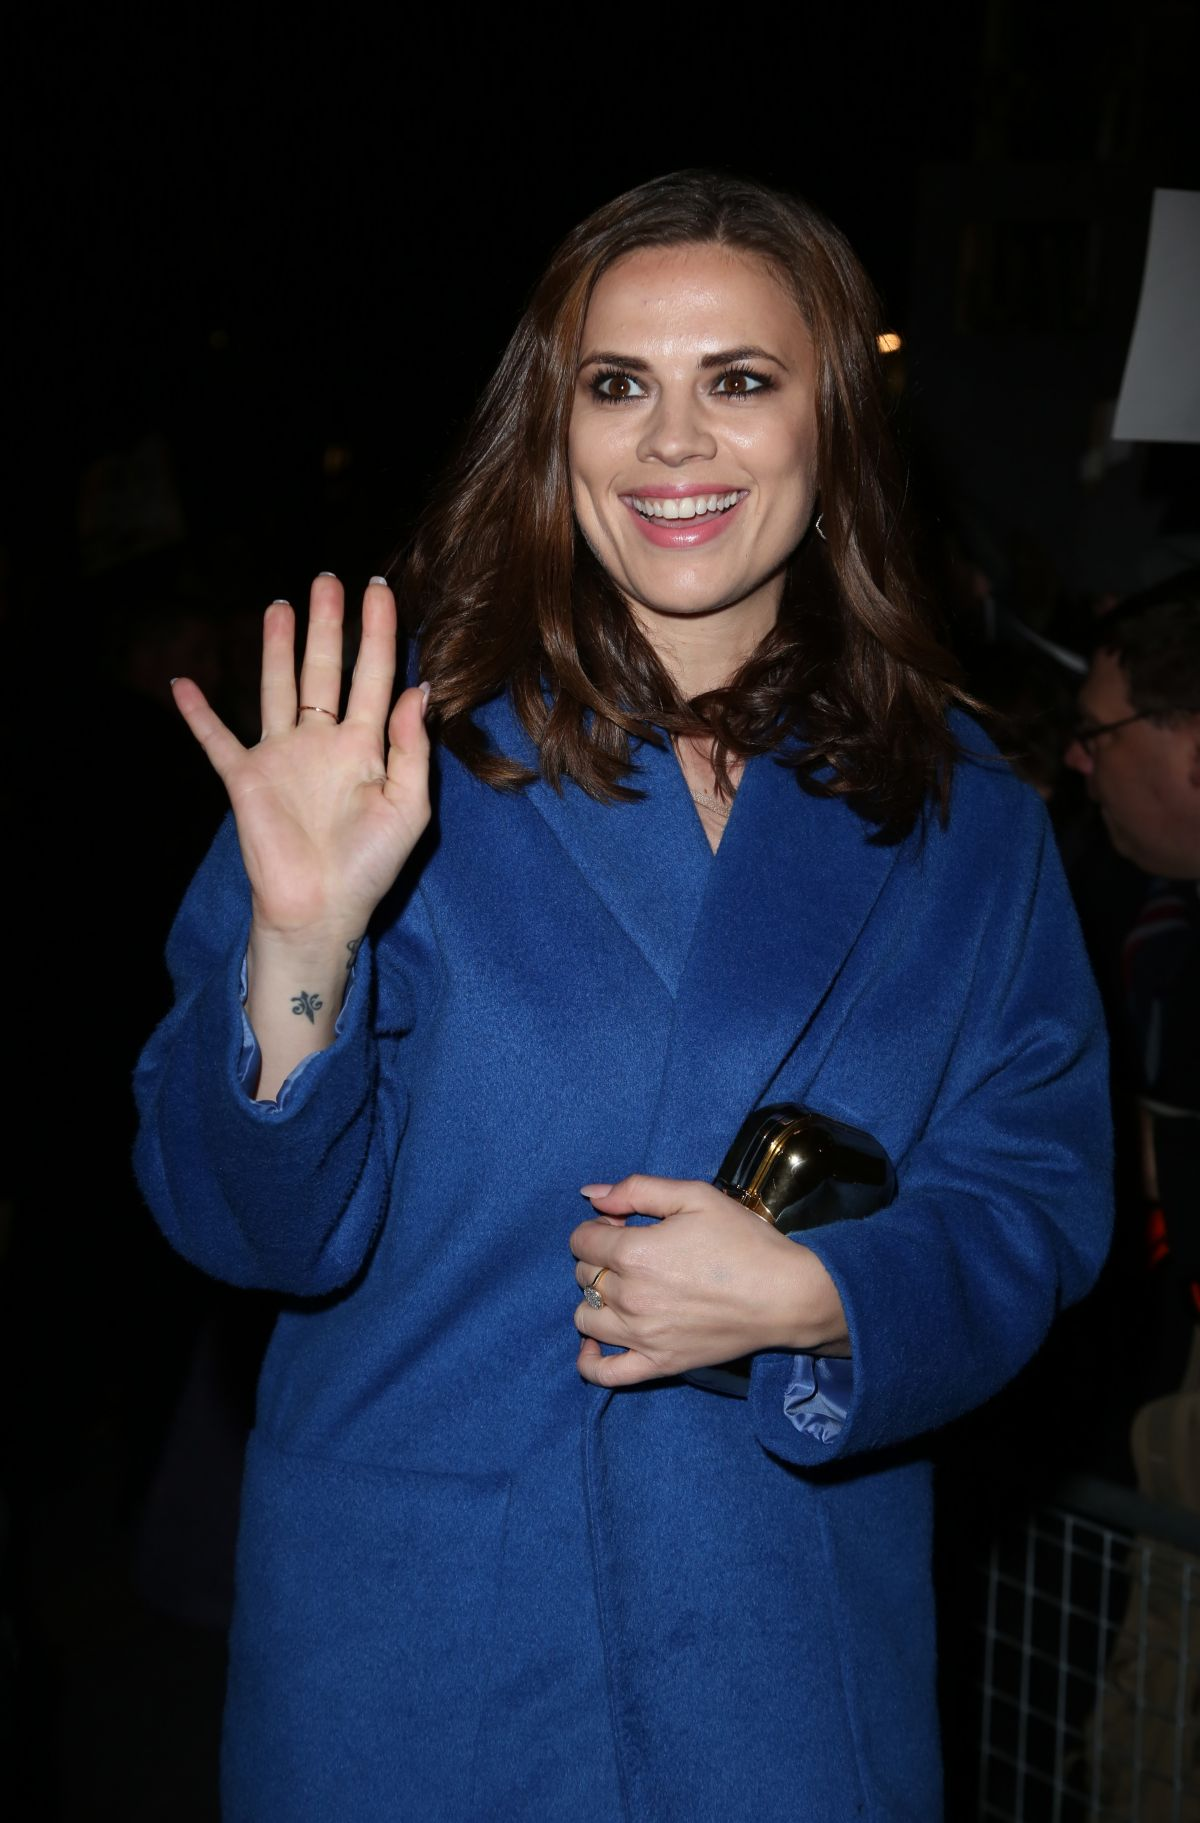 HAYLEY ATWELL at Charles Finch and Chanel Pre-bafta Party in London